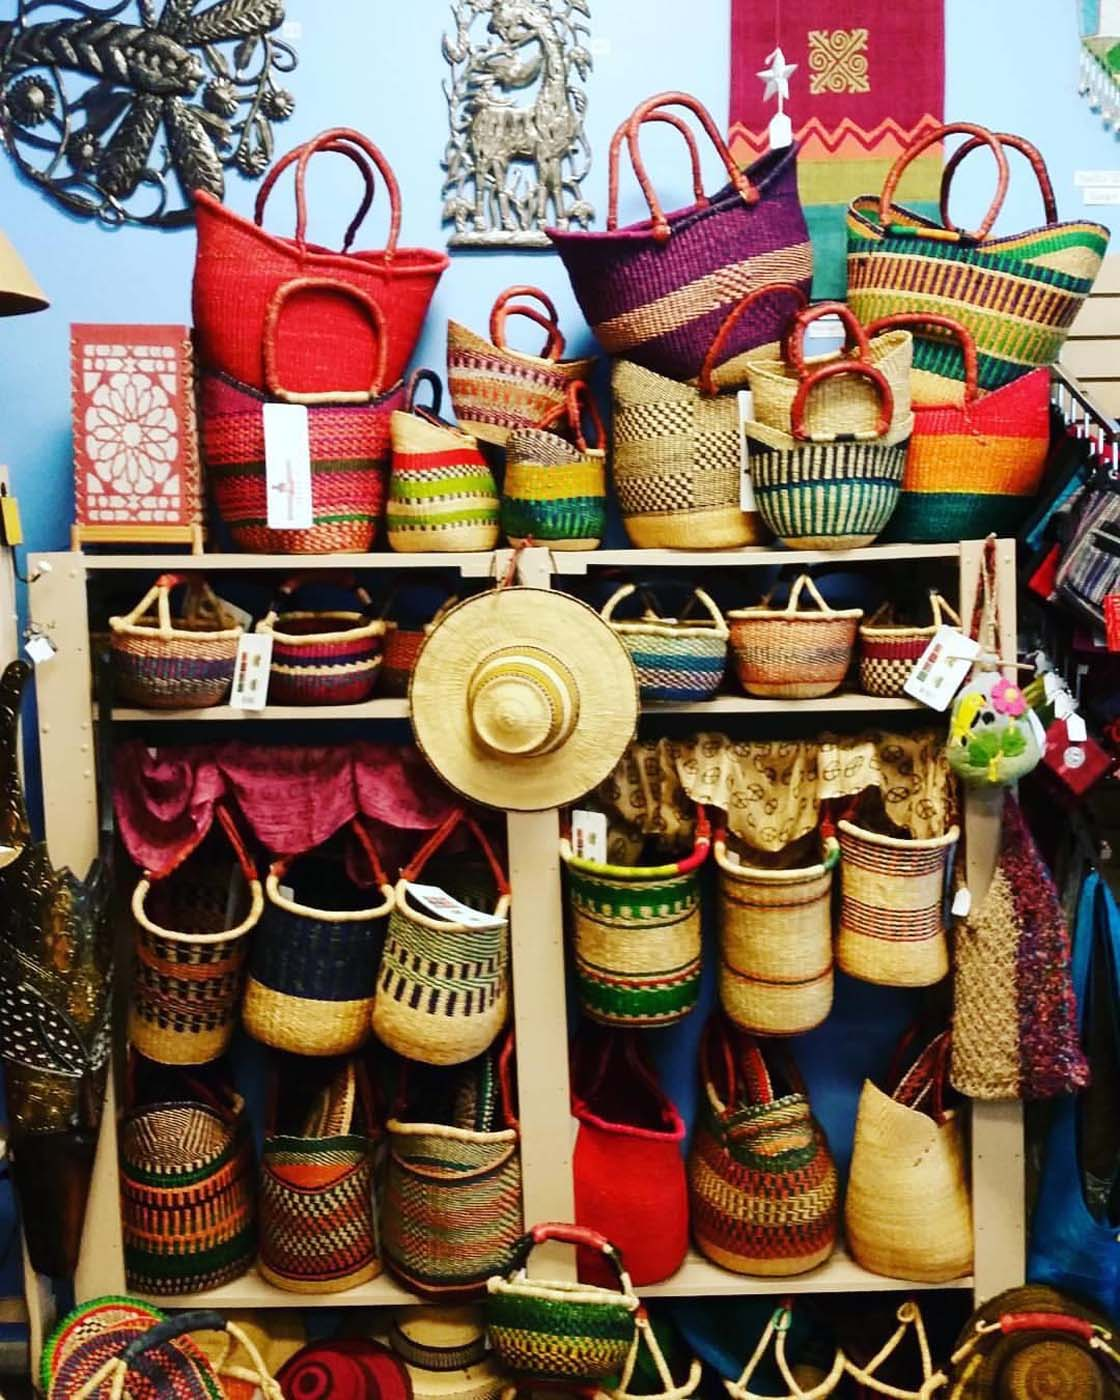 Simple store shelves are brightened by Bolga baskets